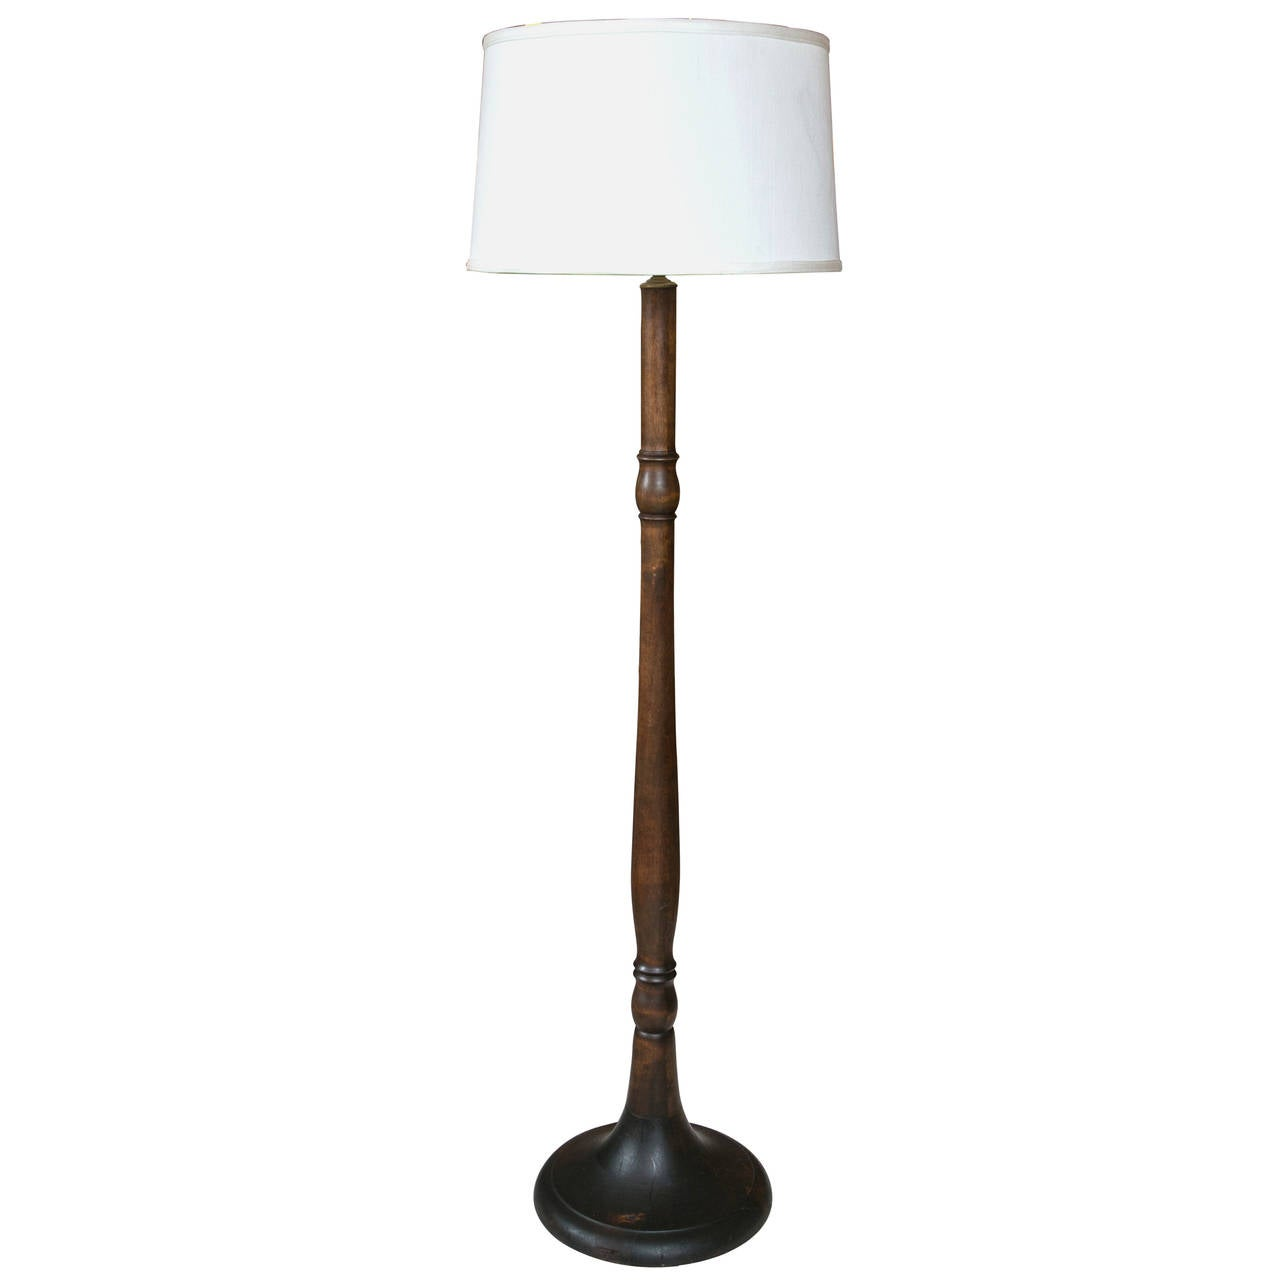 Floor Lamp Wooden Large Turned Wood Floor Lamp At 1stdibs